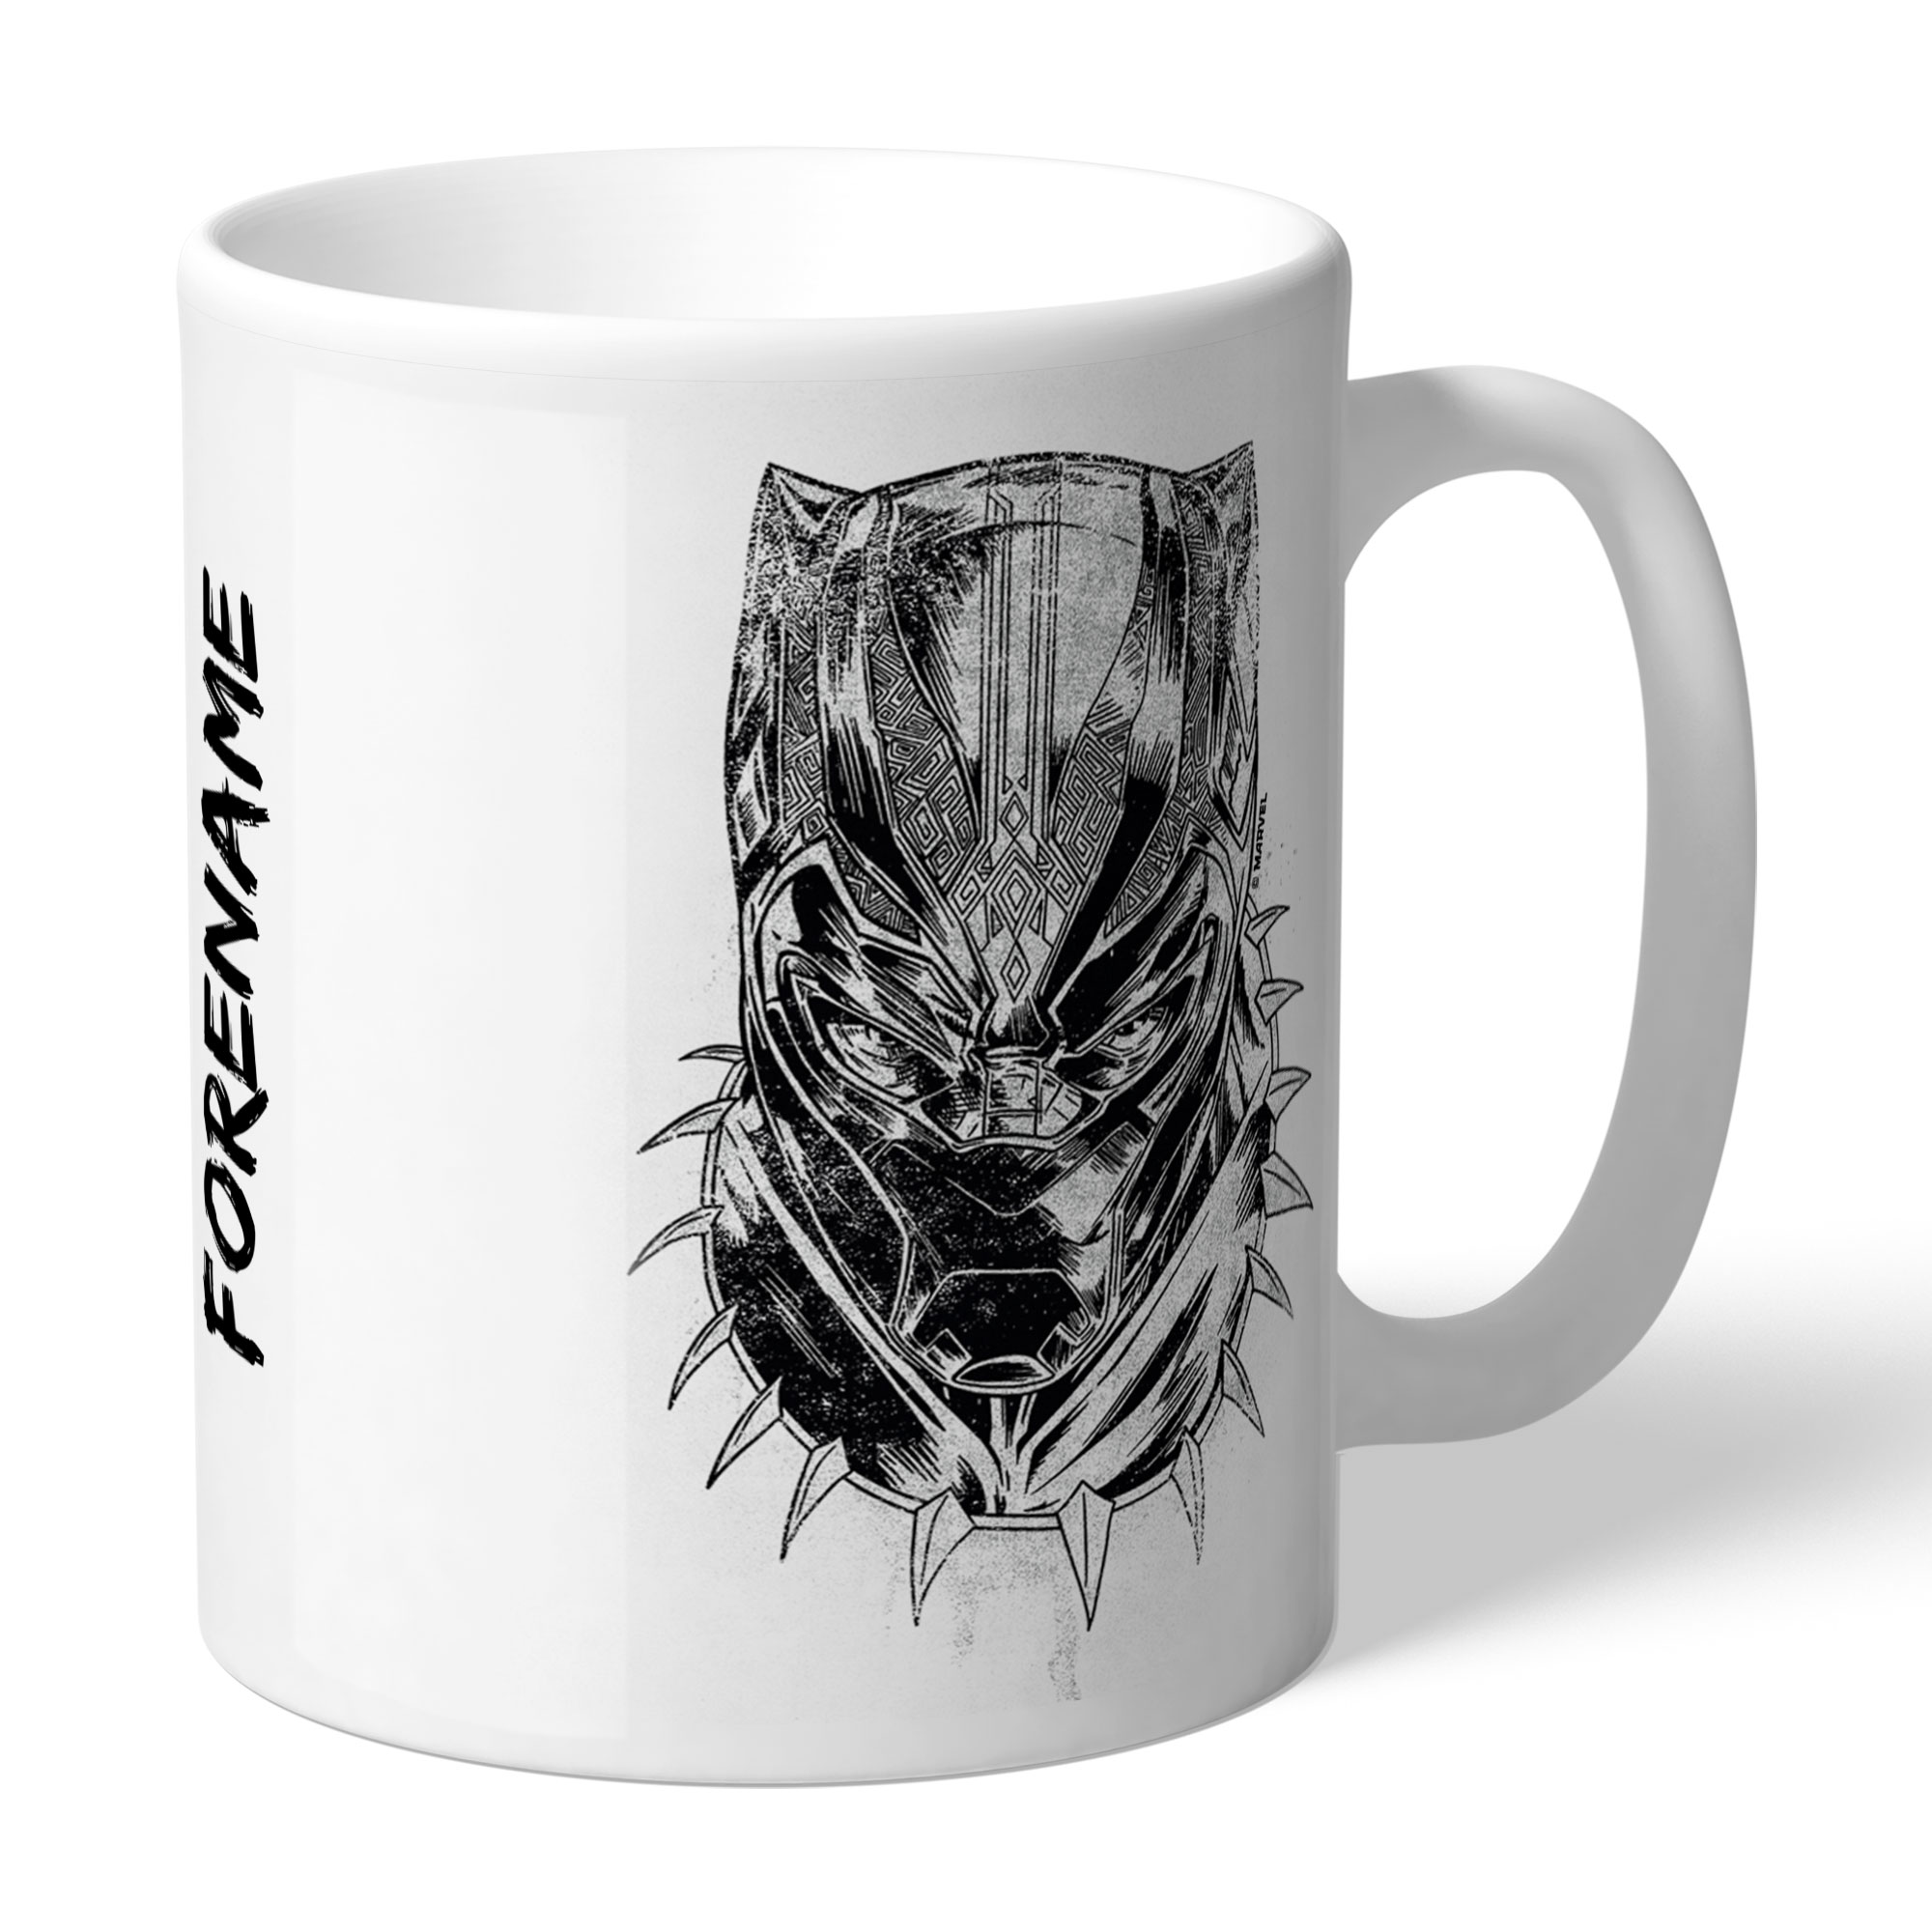 Marvel Black Panther Sketch Mug